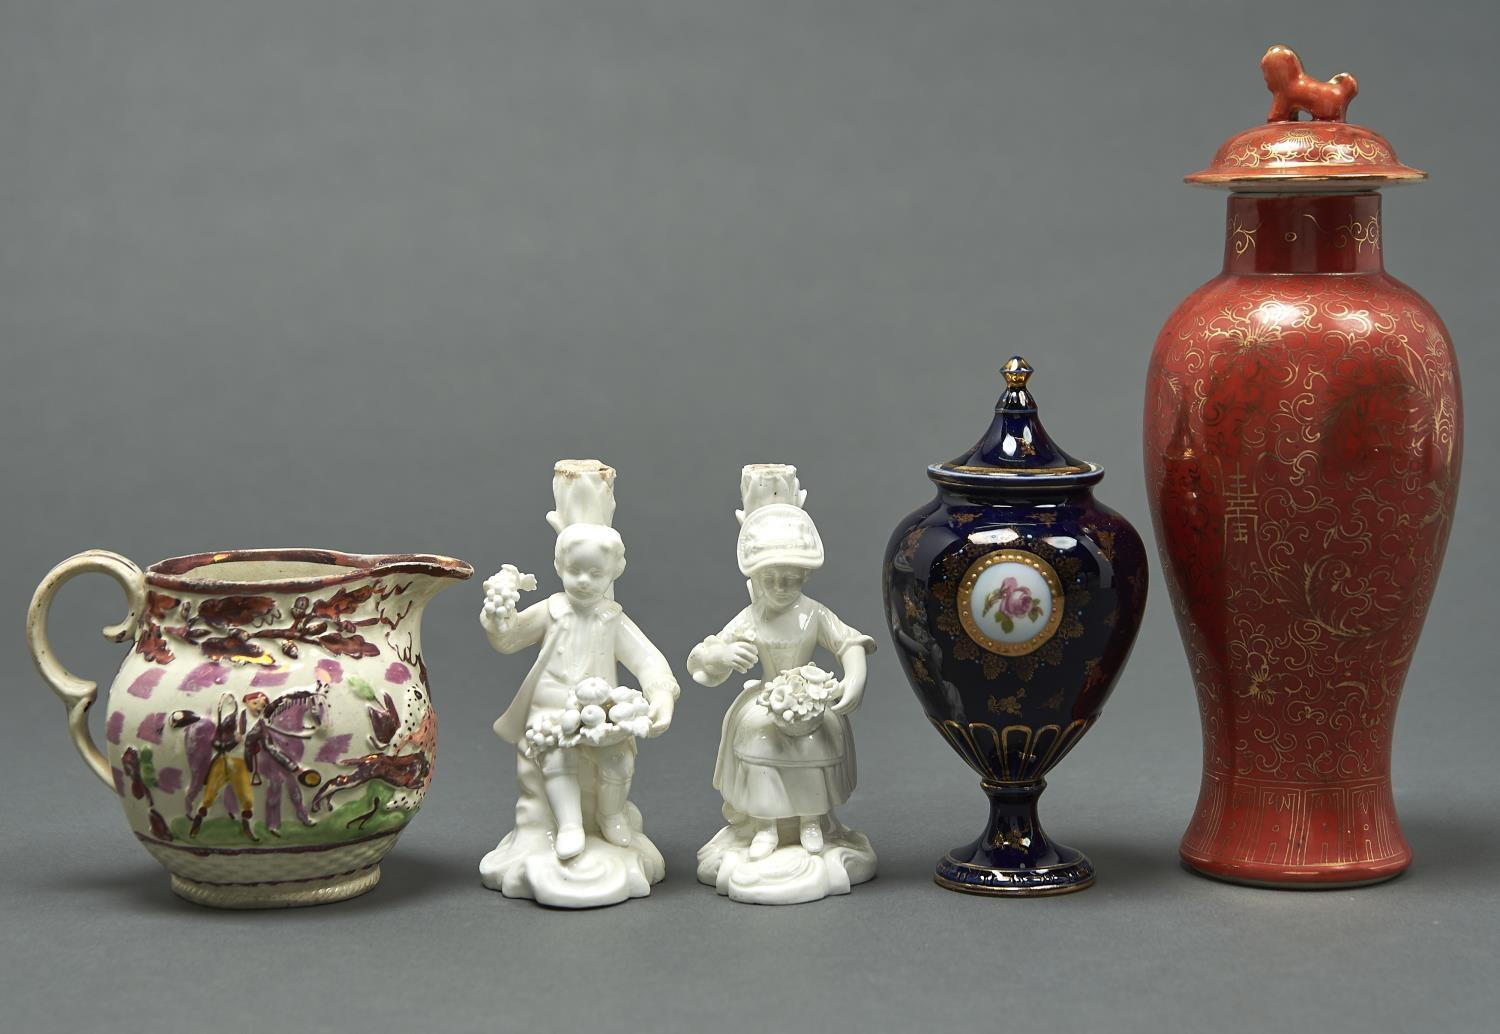 A PAIR OF SAMPSON HANCOCK GLAZED PORCELAIN CANDLESTICK FIGURES OF BOY AND GILT FLOWER SELLERS,